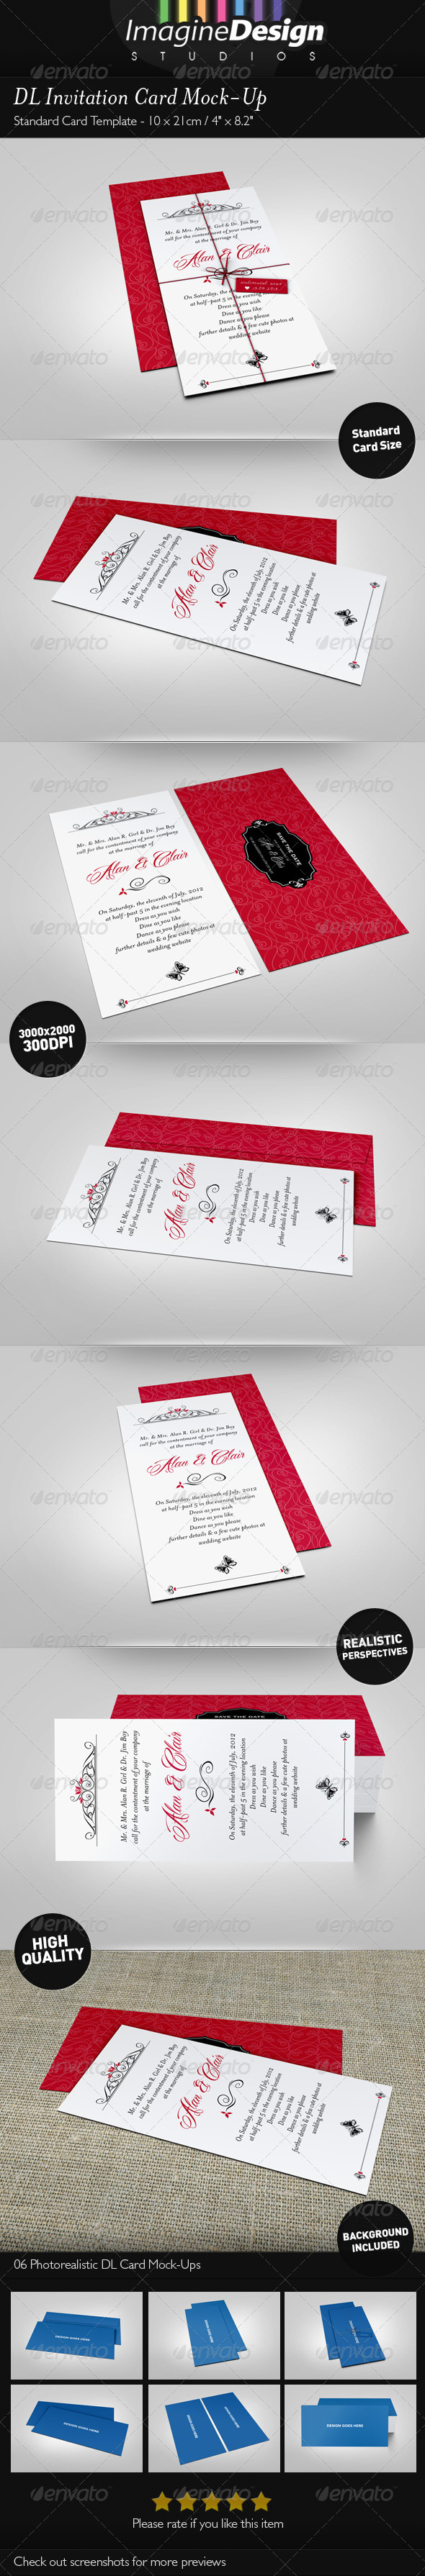 GraphicRiver DL Invitation Card Mock-Up 3847566